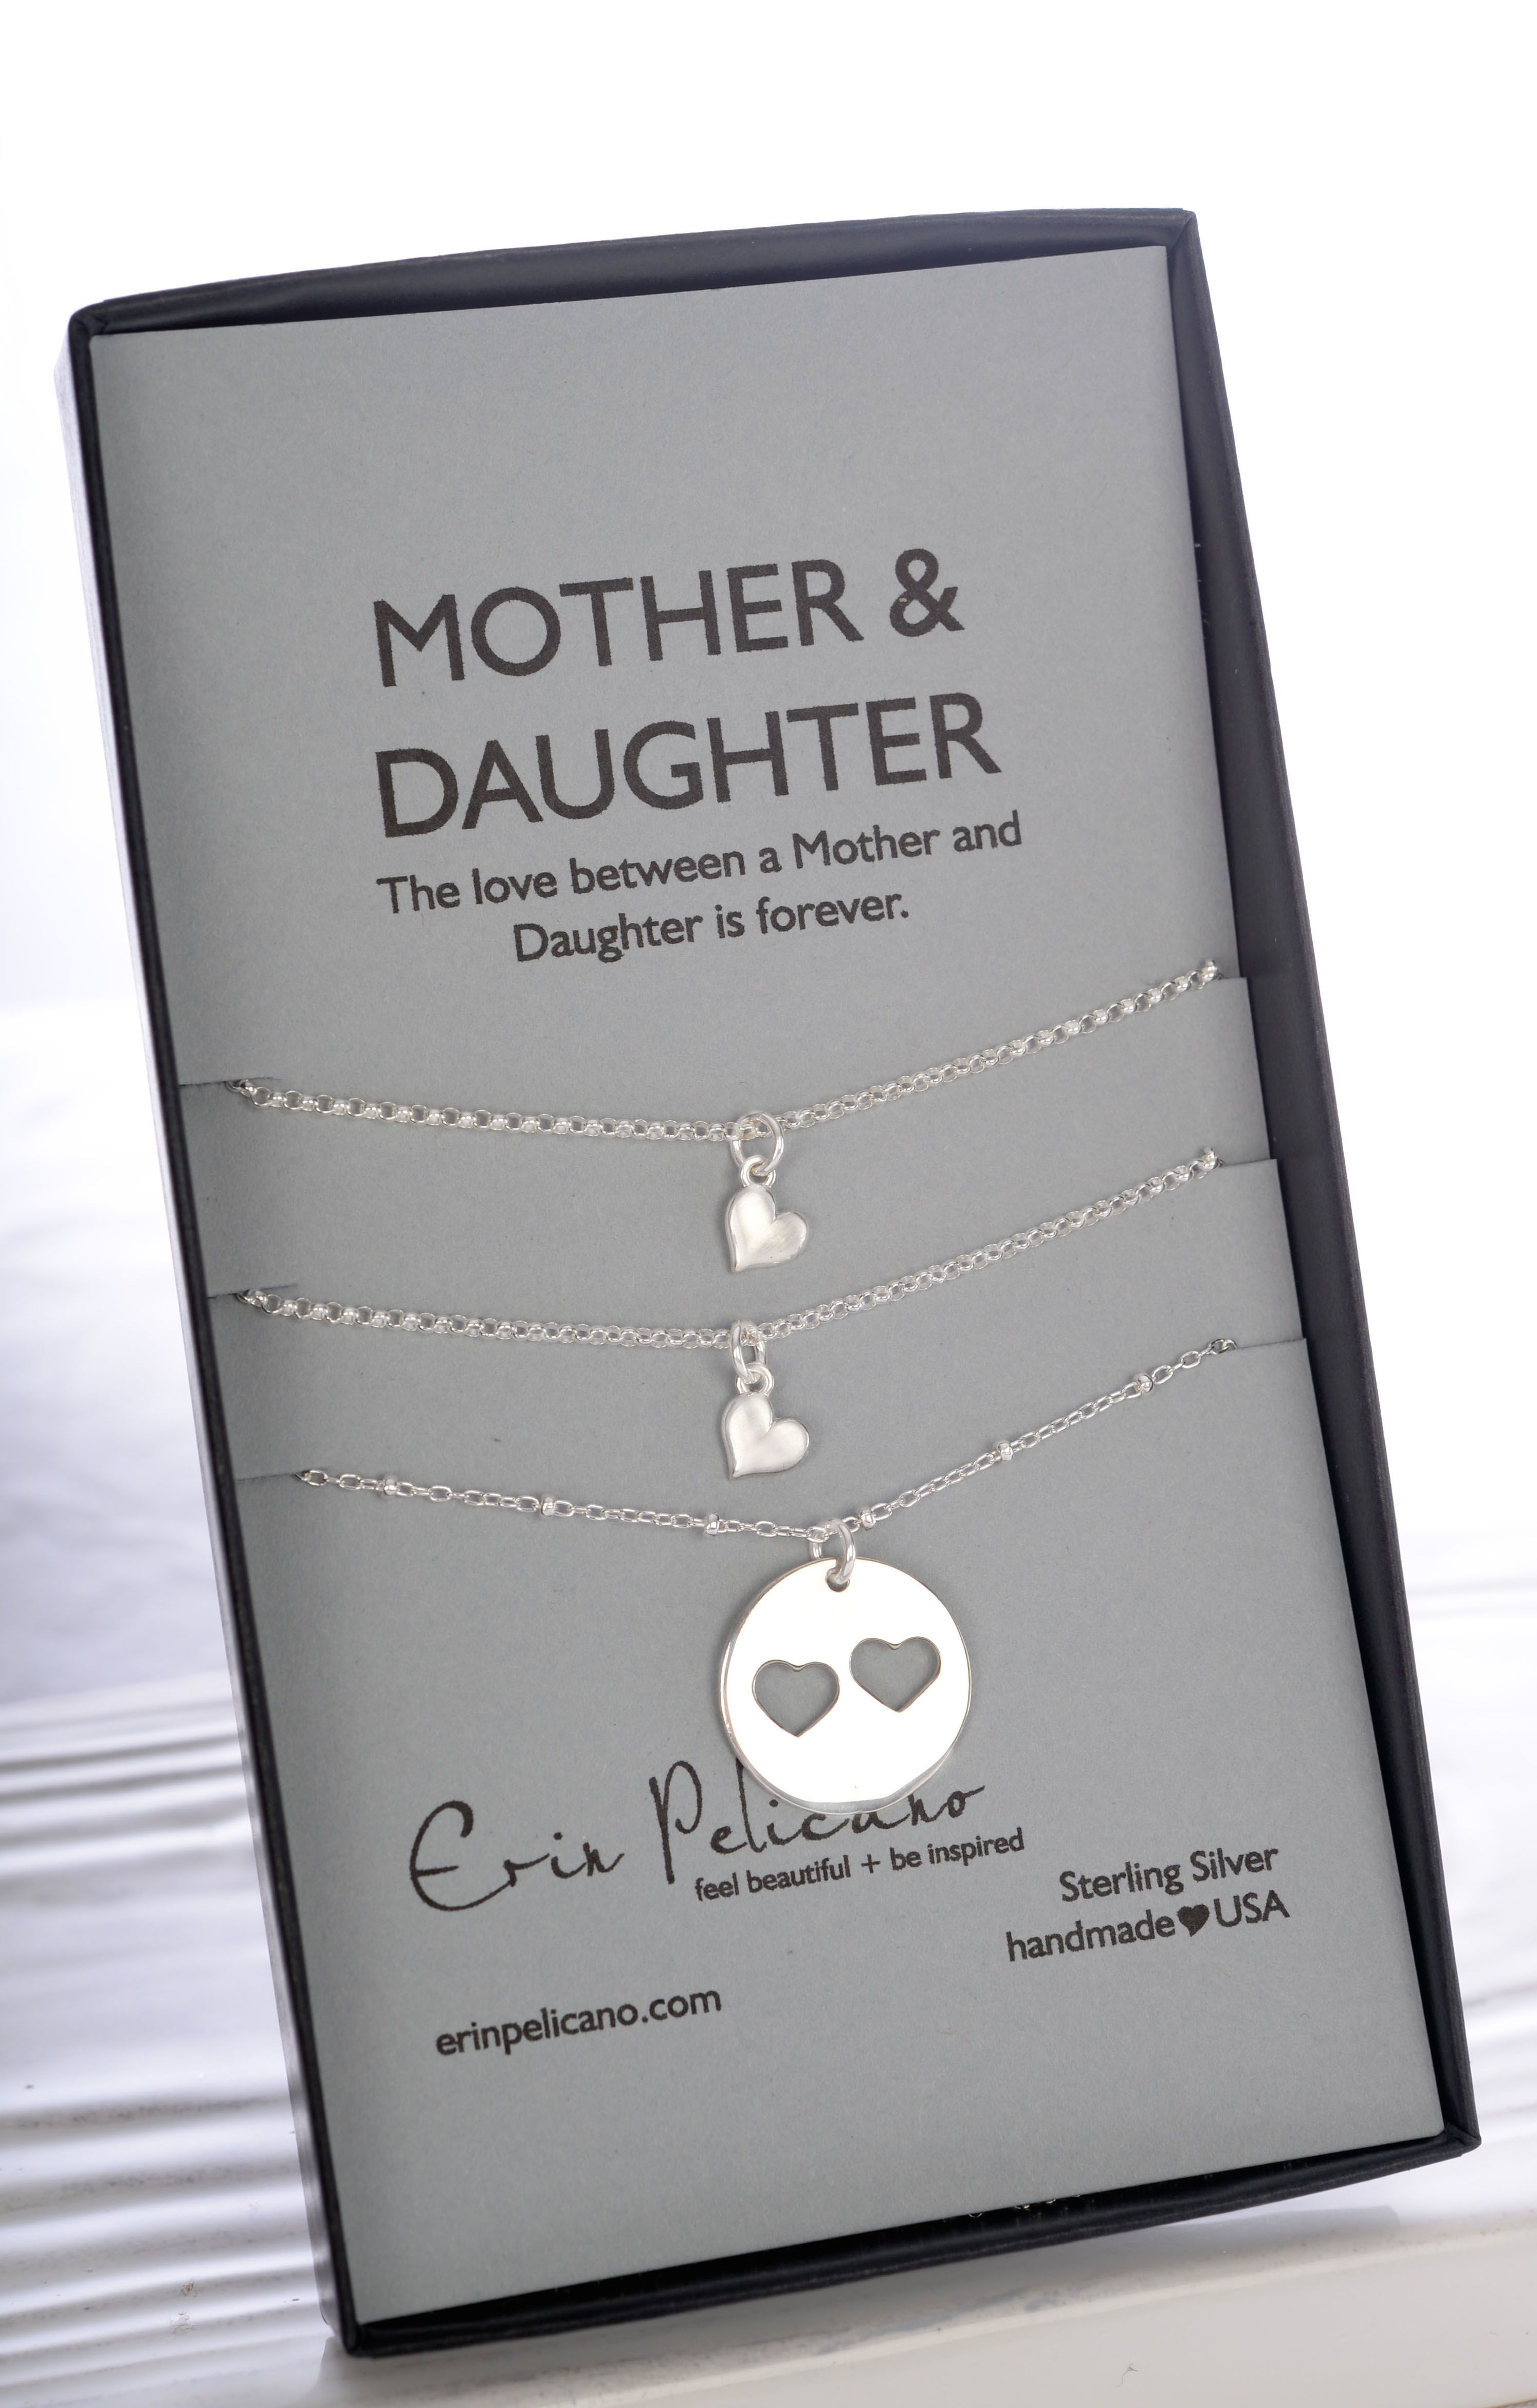 Mother Daughter Gifts Celebrate Love Family And Mom With The Perfect Gift For Daughters Women Men Find All Sweet Sentimental At